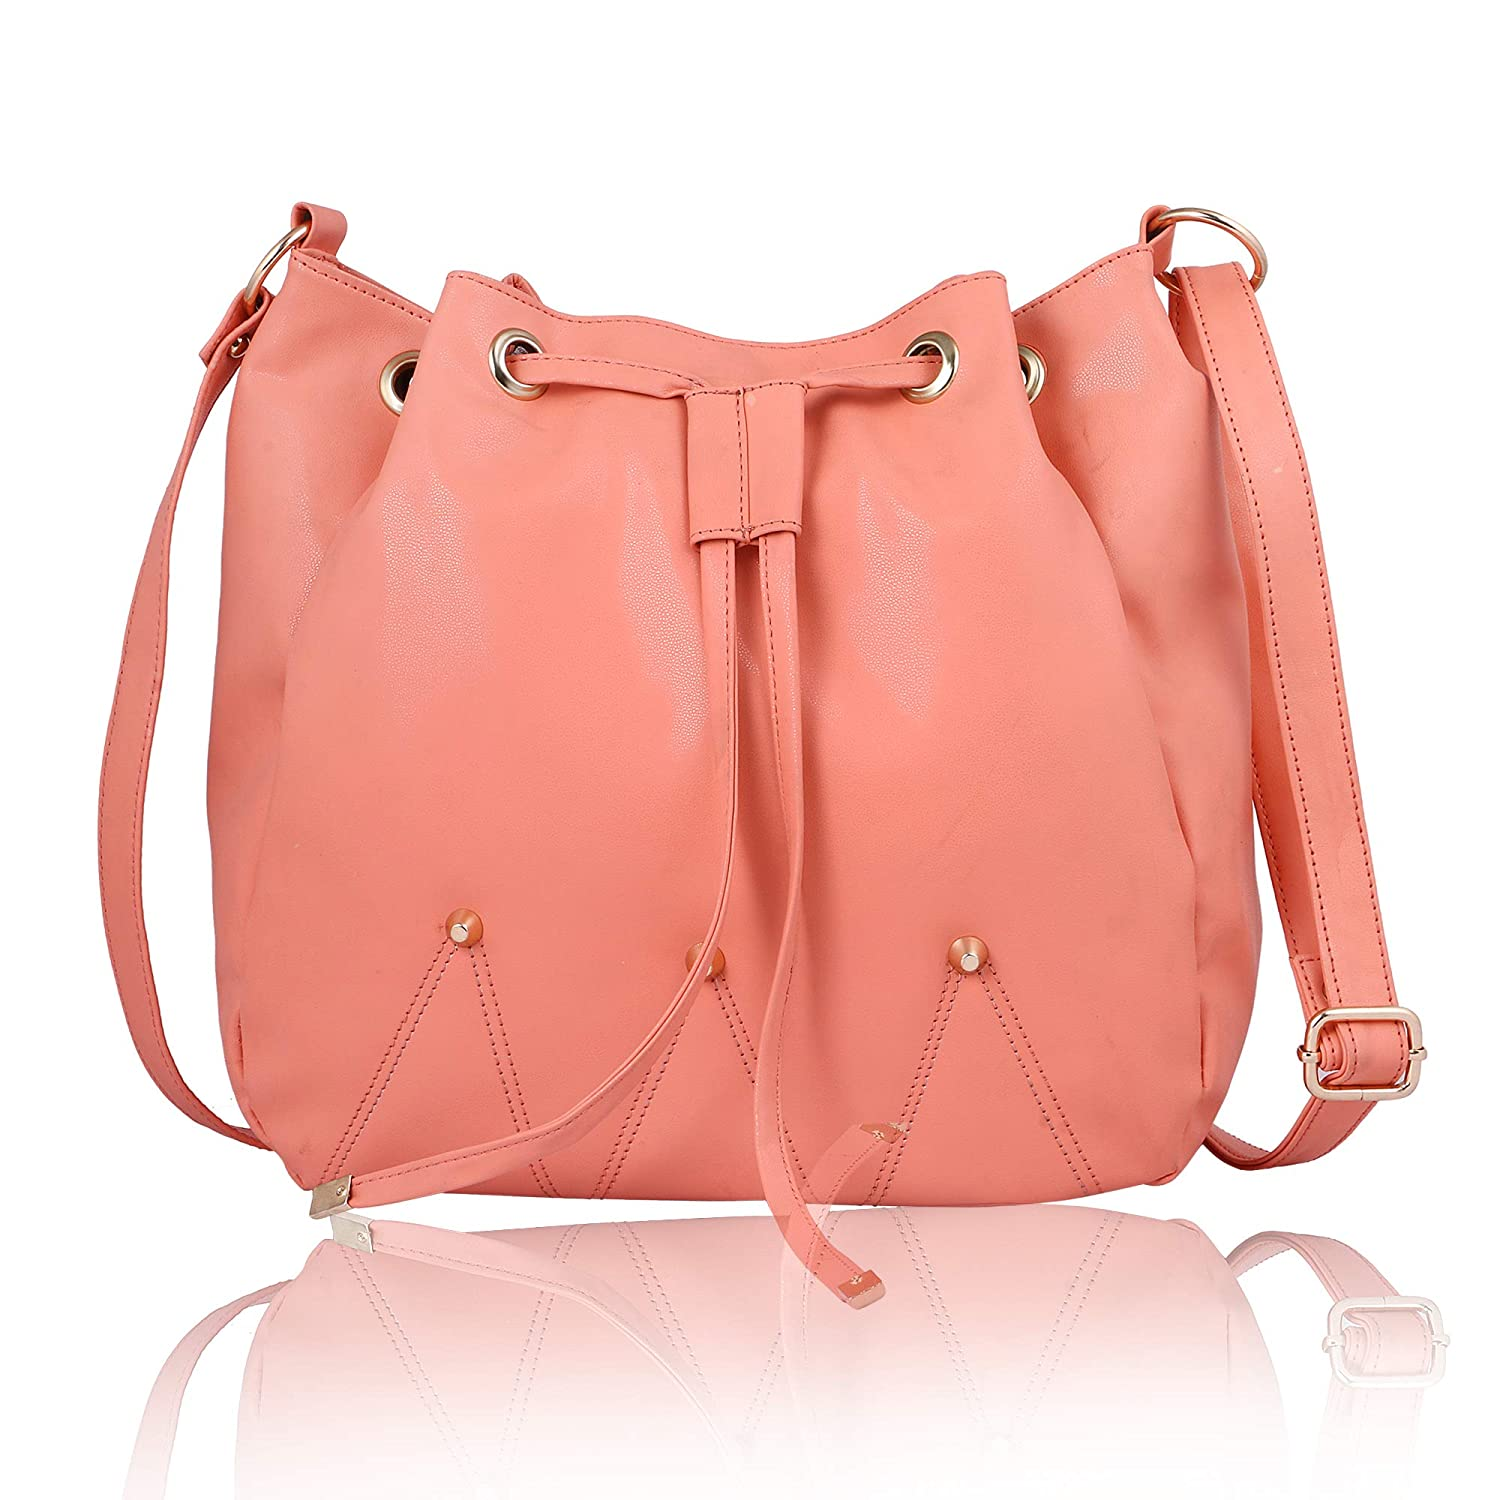 Women Marks Women s Sling Bag (Peach)  Amazon.in  Shoes   Handbags 71260a40a2